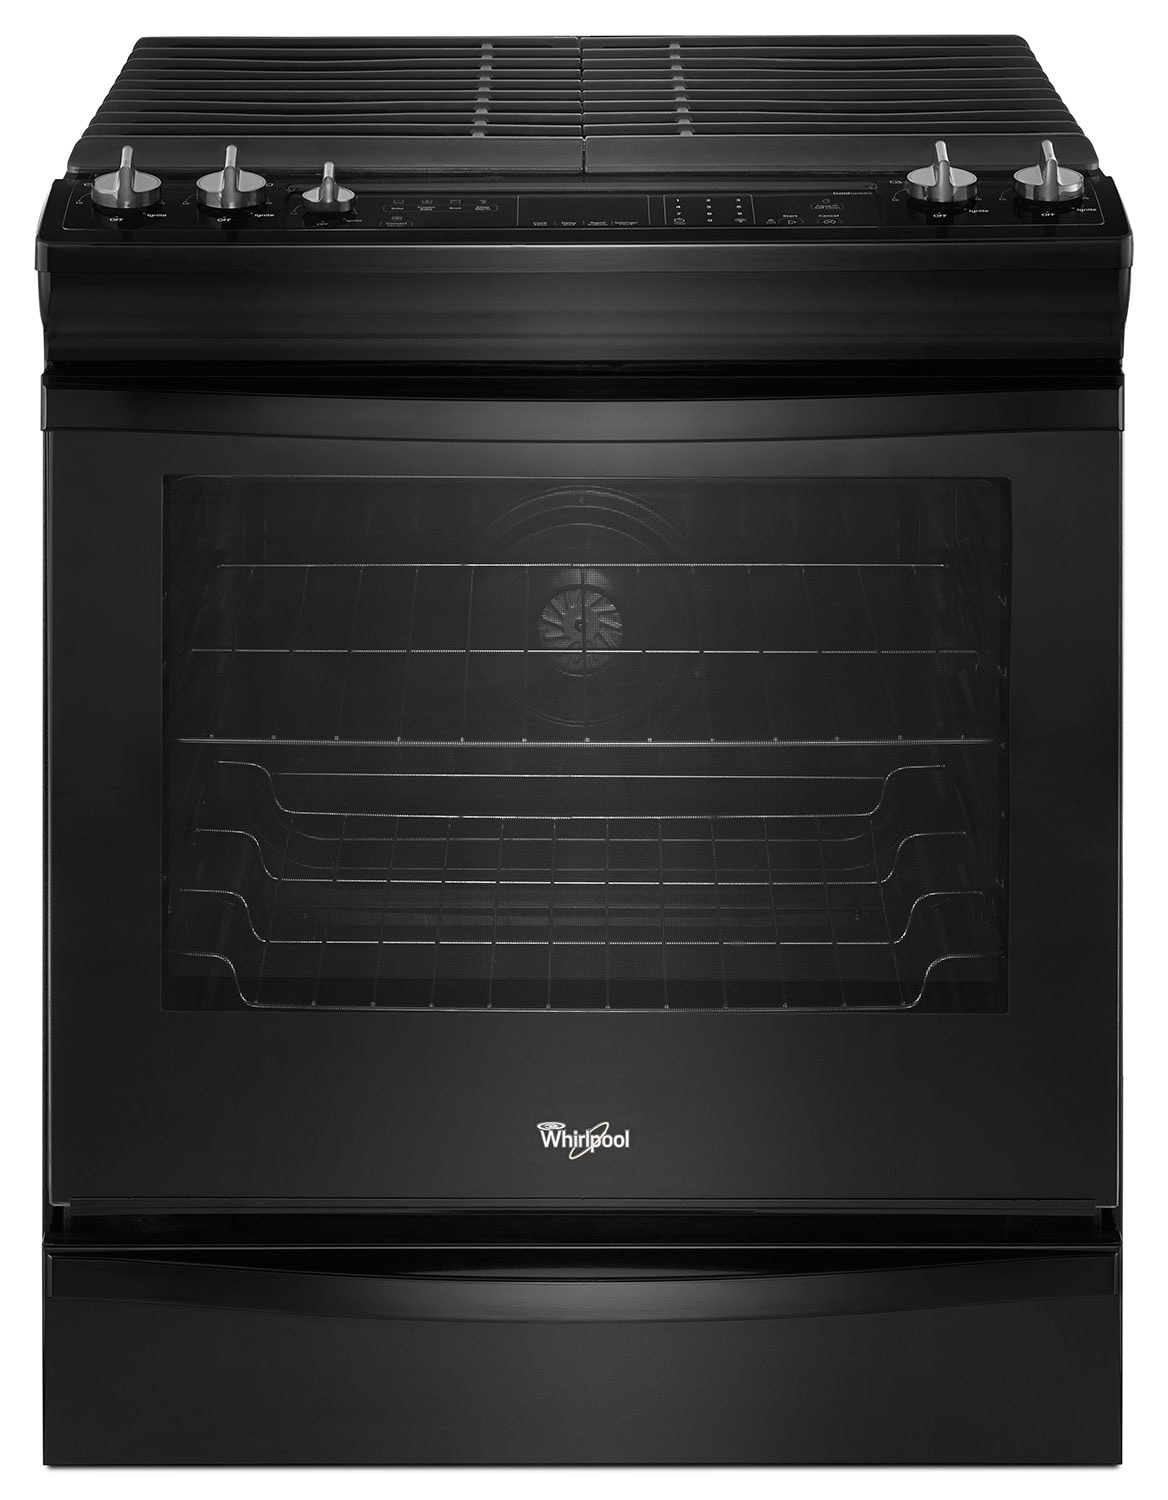 Cooking Products - Whirlpool Black Slide-In Gas Convection Range (5.8 Cu. Ft.) - WEG730H0DB